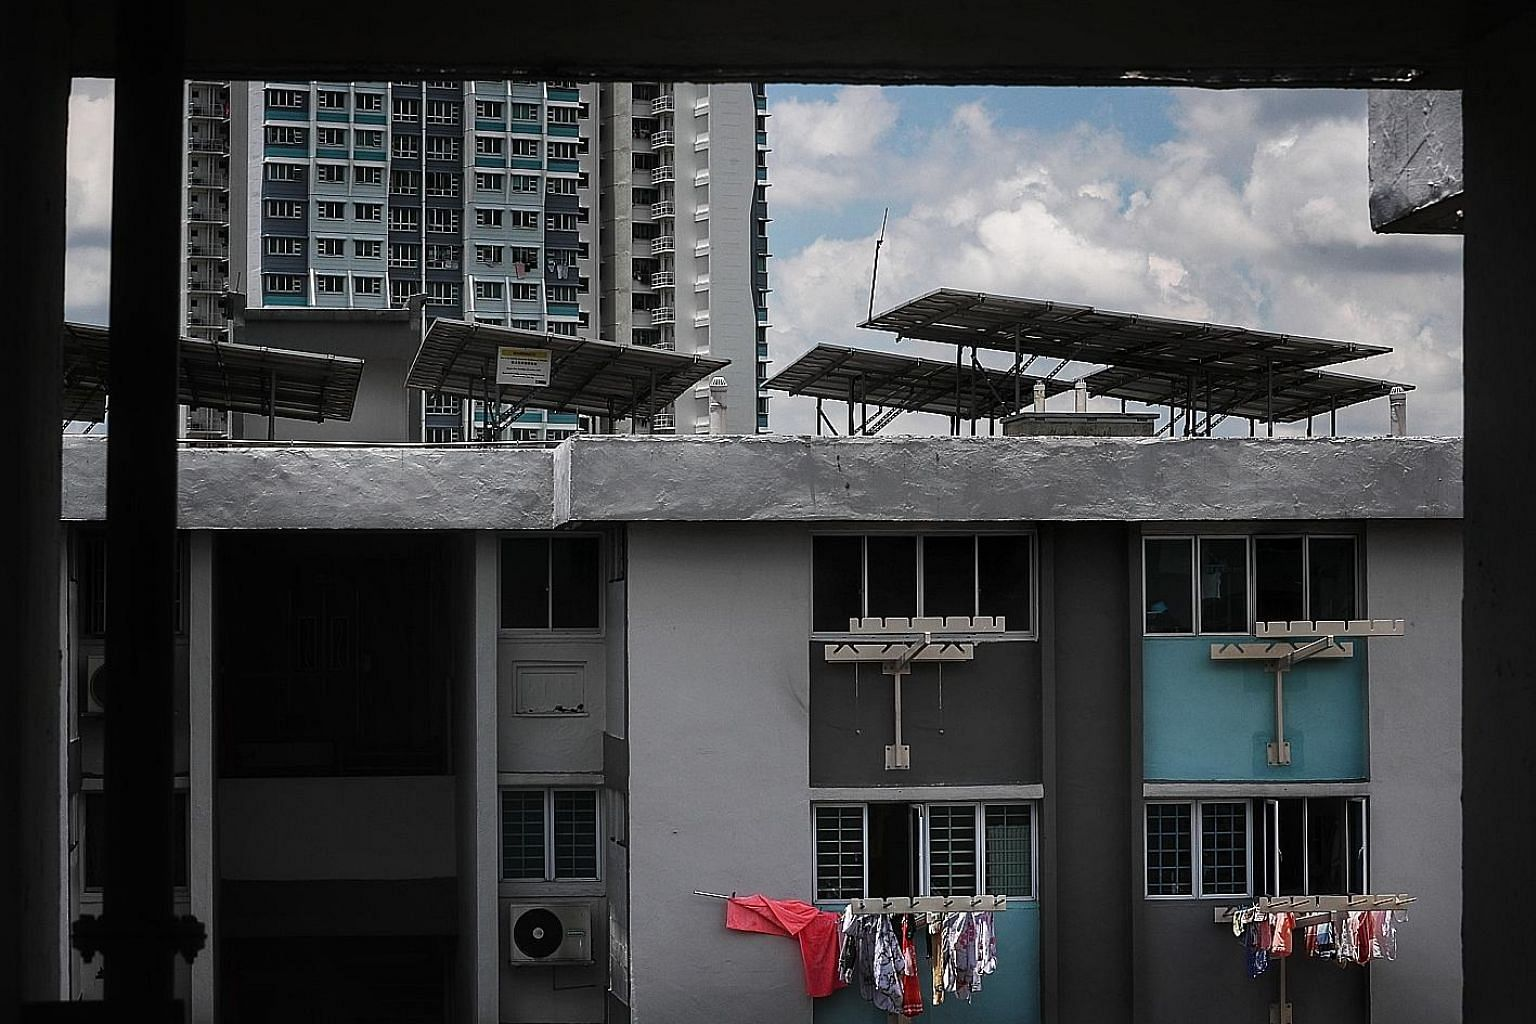 Solar panels on the rooftops of Housing Board blocks in Ang Mo Kio, Singapore. One of the sunniest cities in the world, solar energy is its most viable renewable energy option, Singapore's electricity regulator told Reuters.